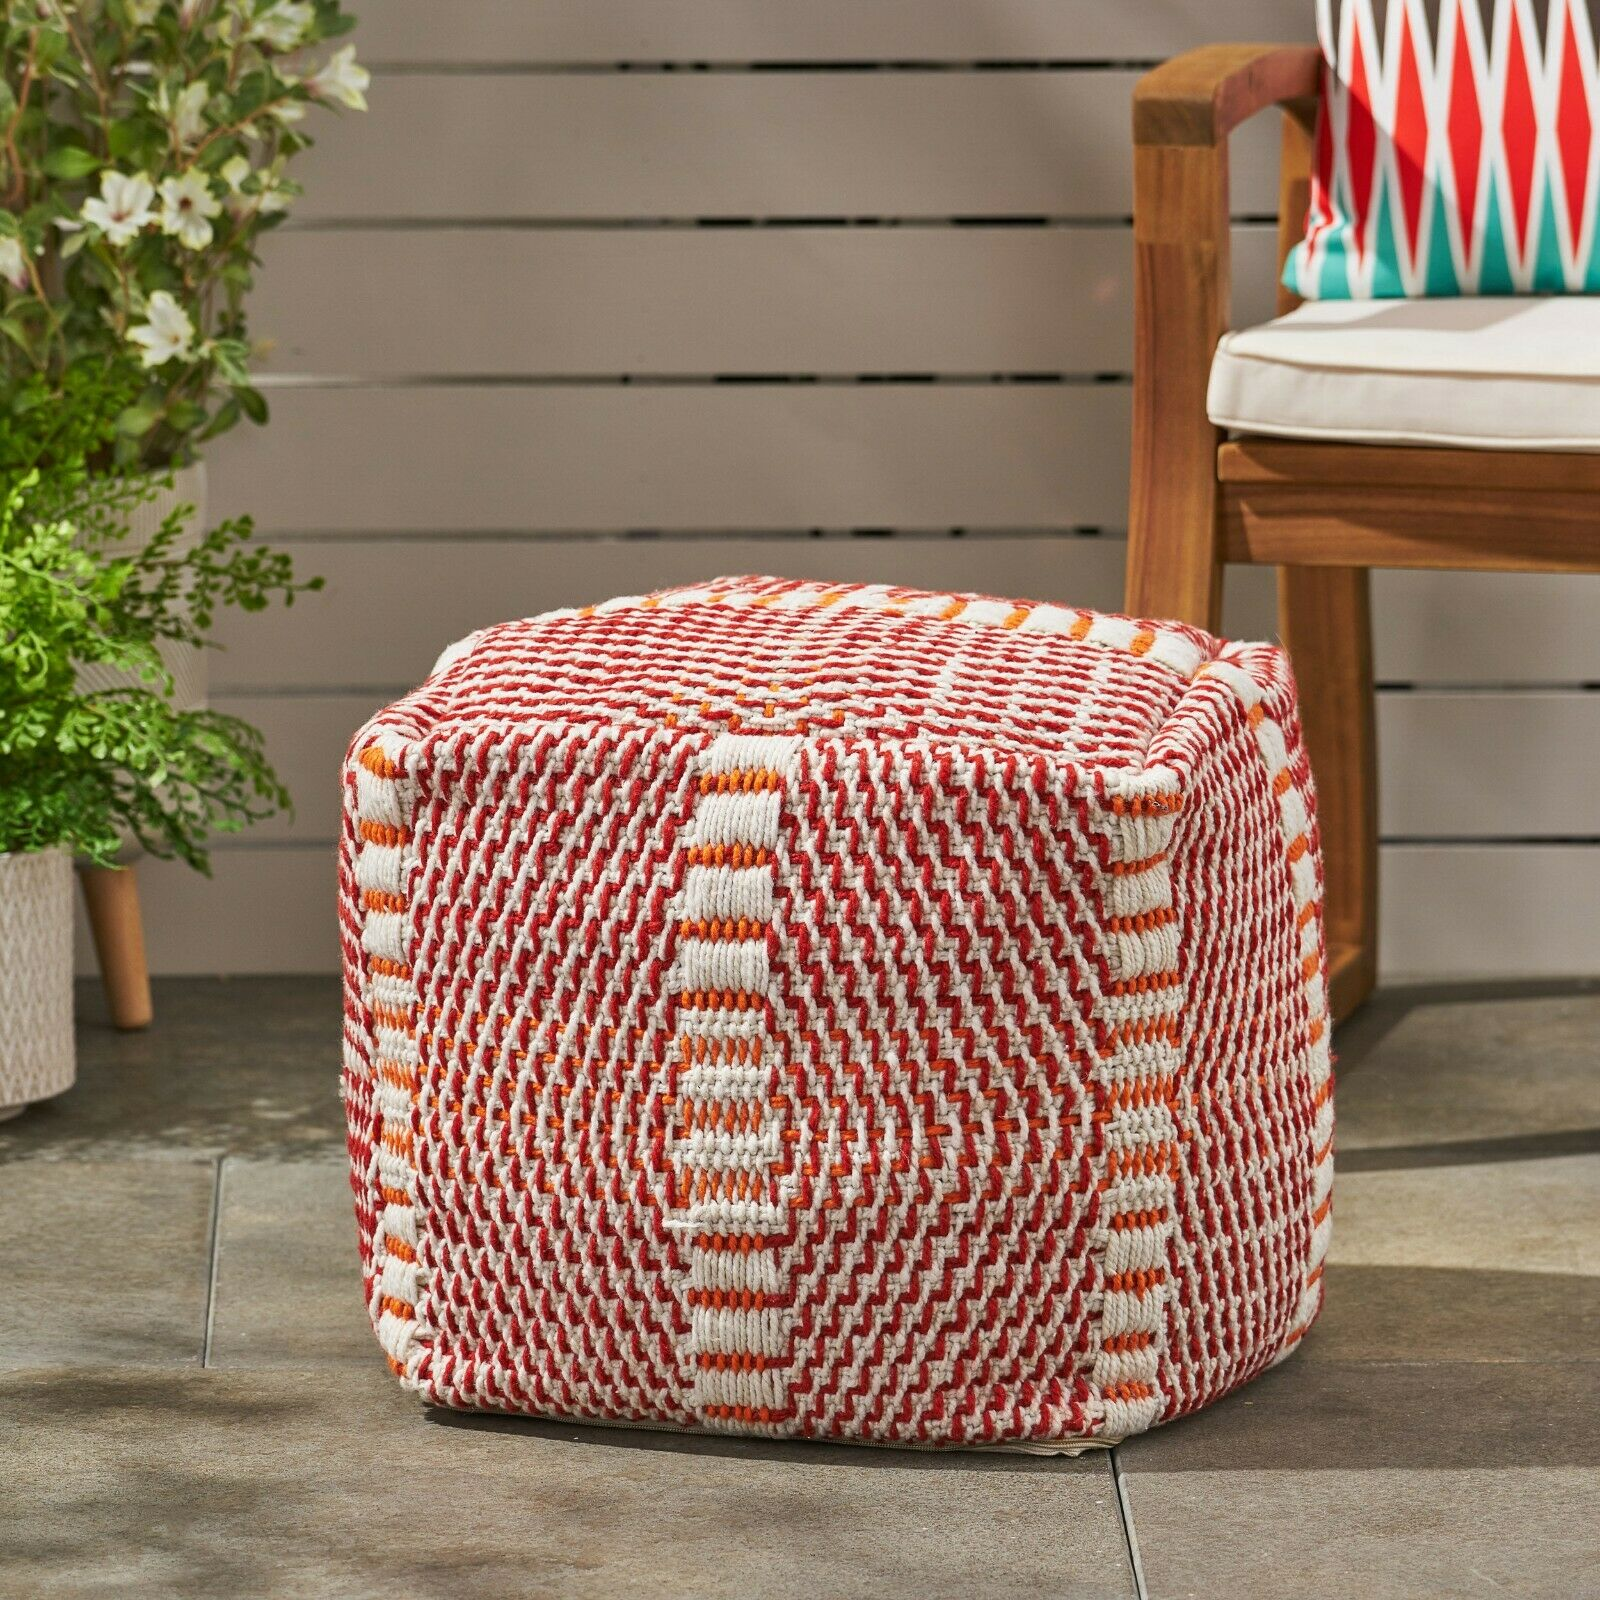 Dexter Bay Outdoor Handcrafted Boho Water Resistant Cube Pouf Furniture